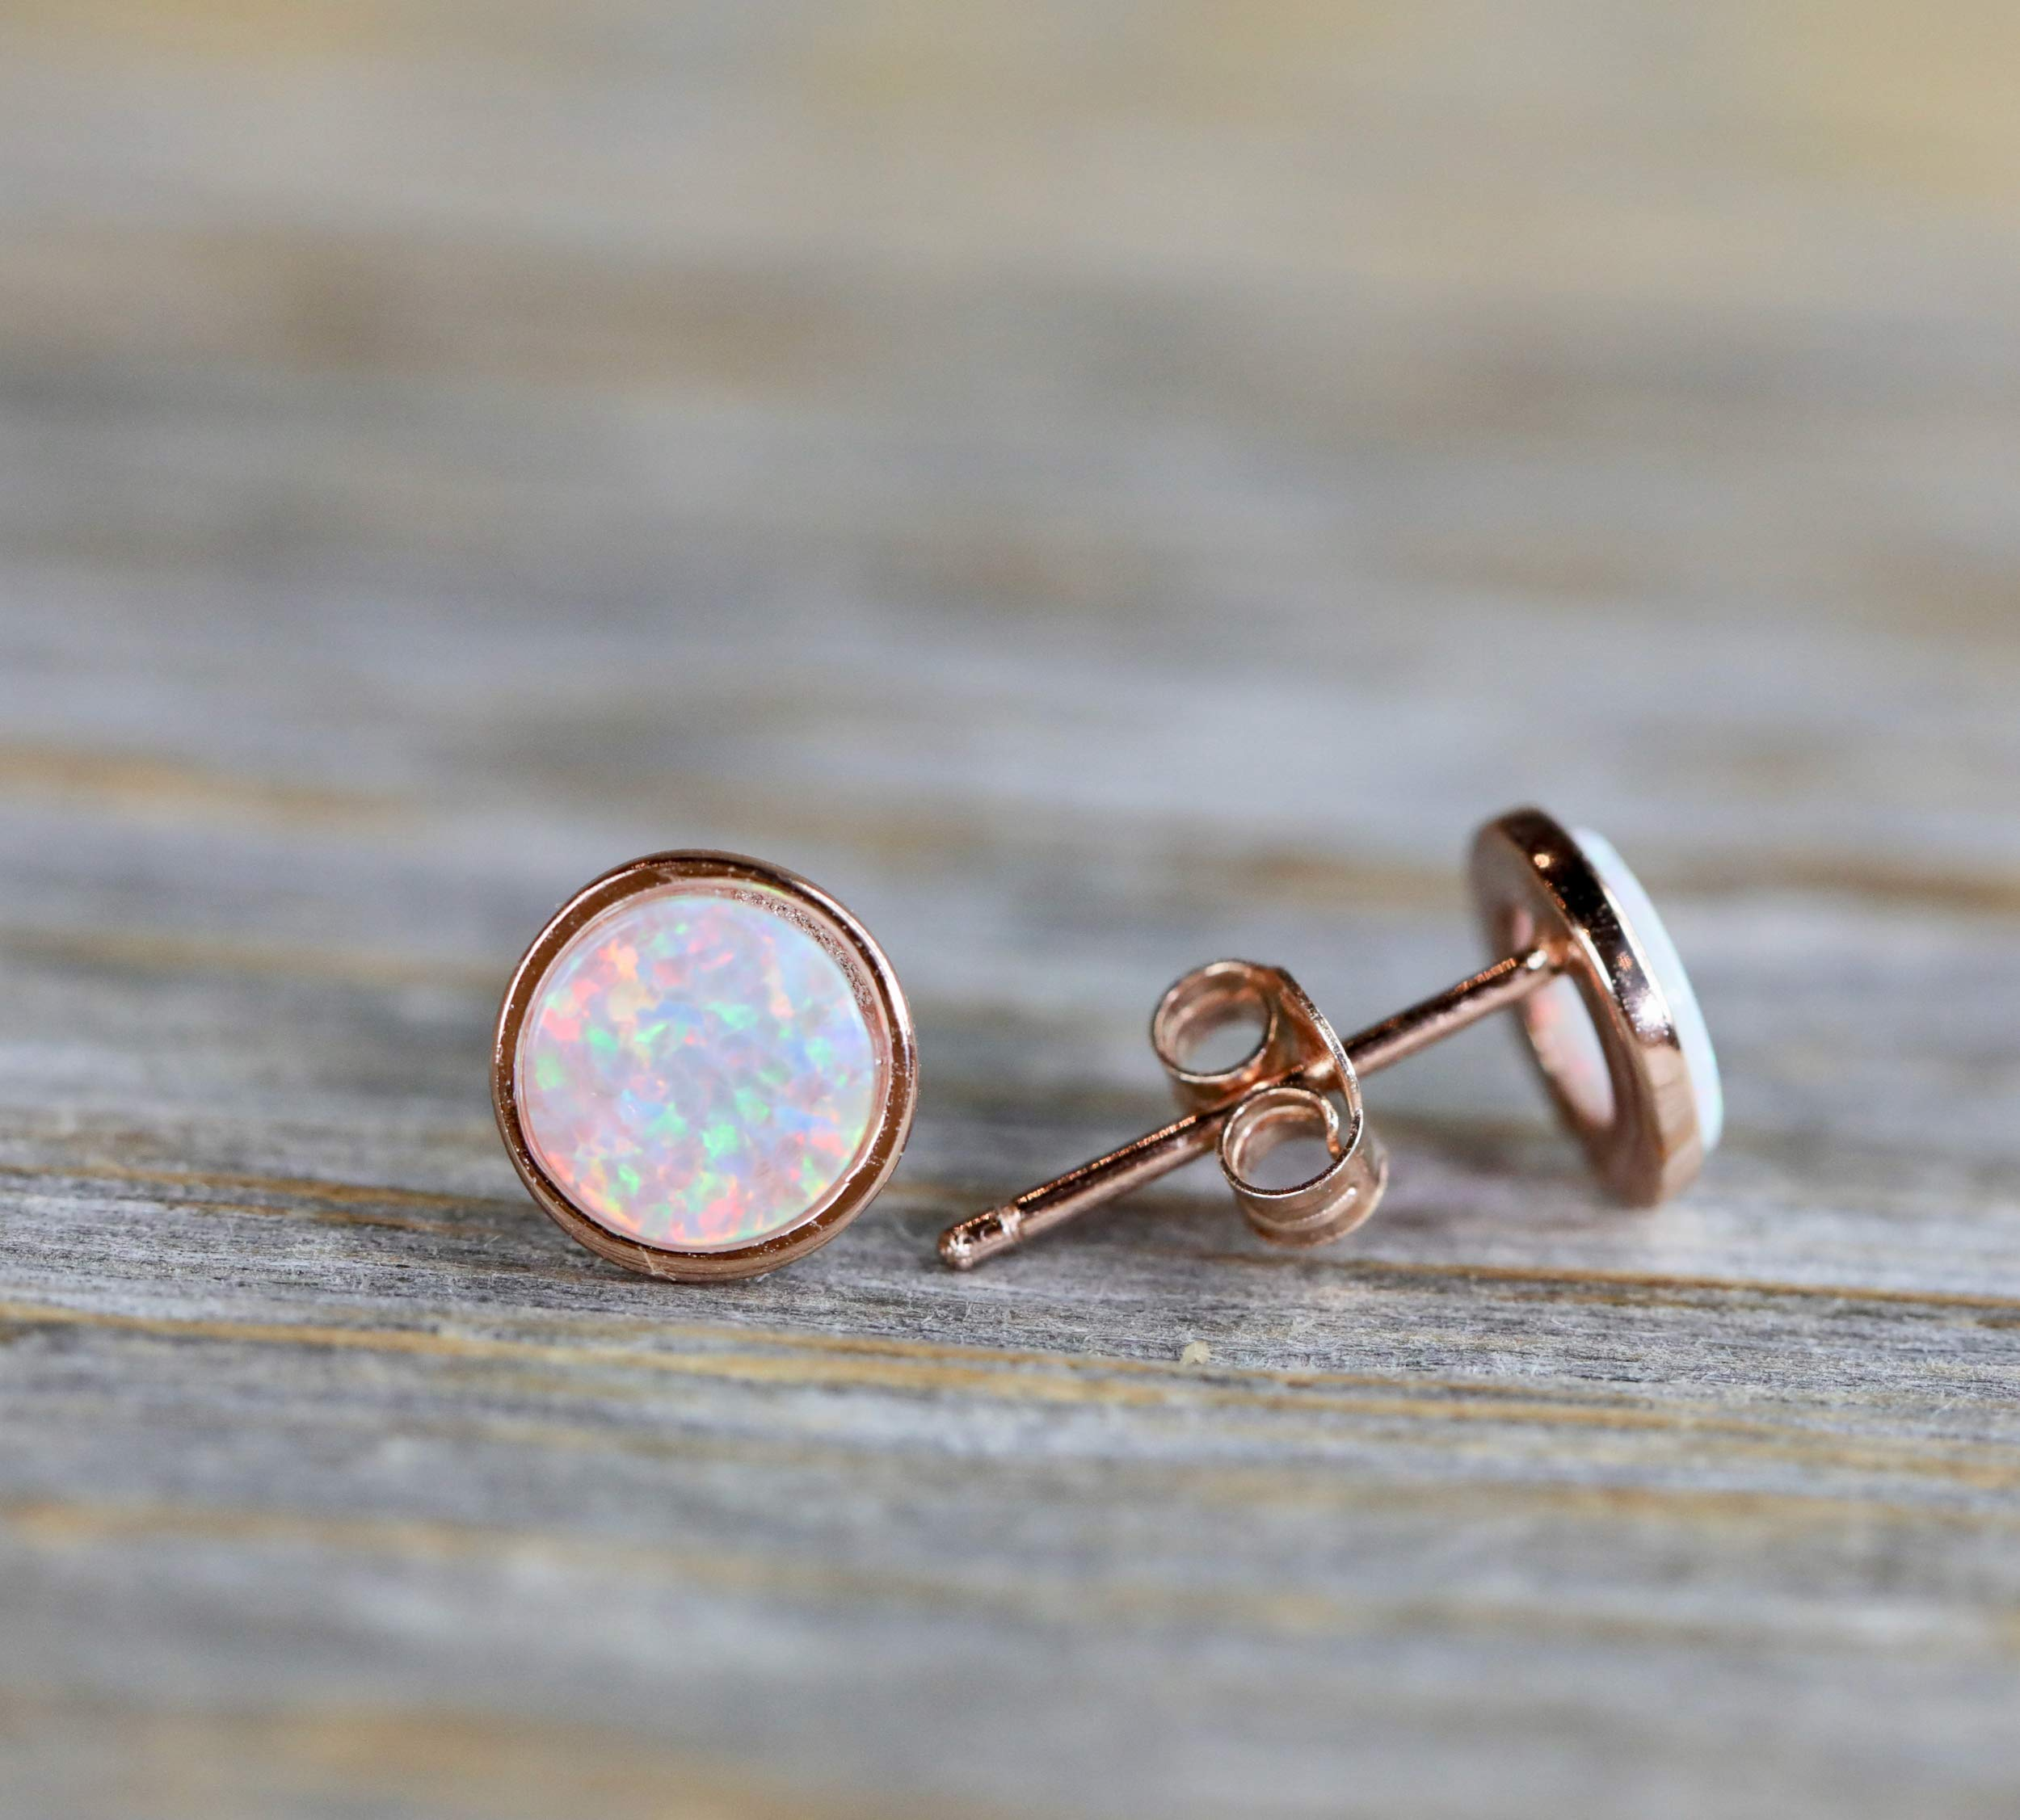 White Opal Stud Earring- 7mm-14k ROSE Gold Sterling Silver-Women's Jewelry- October Birthstone- Holiday Gift Idea